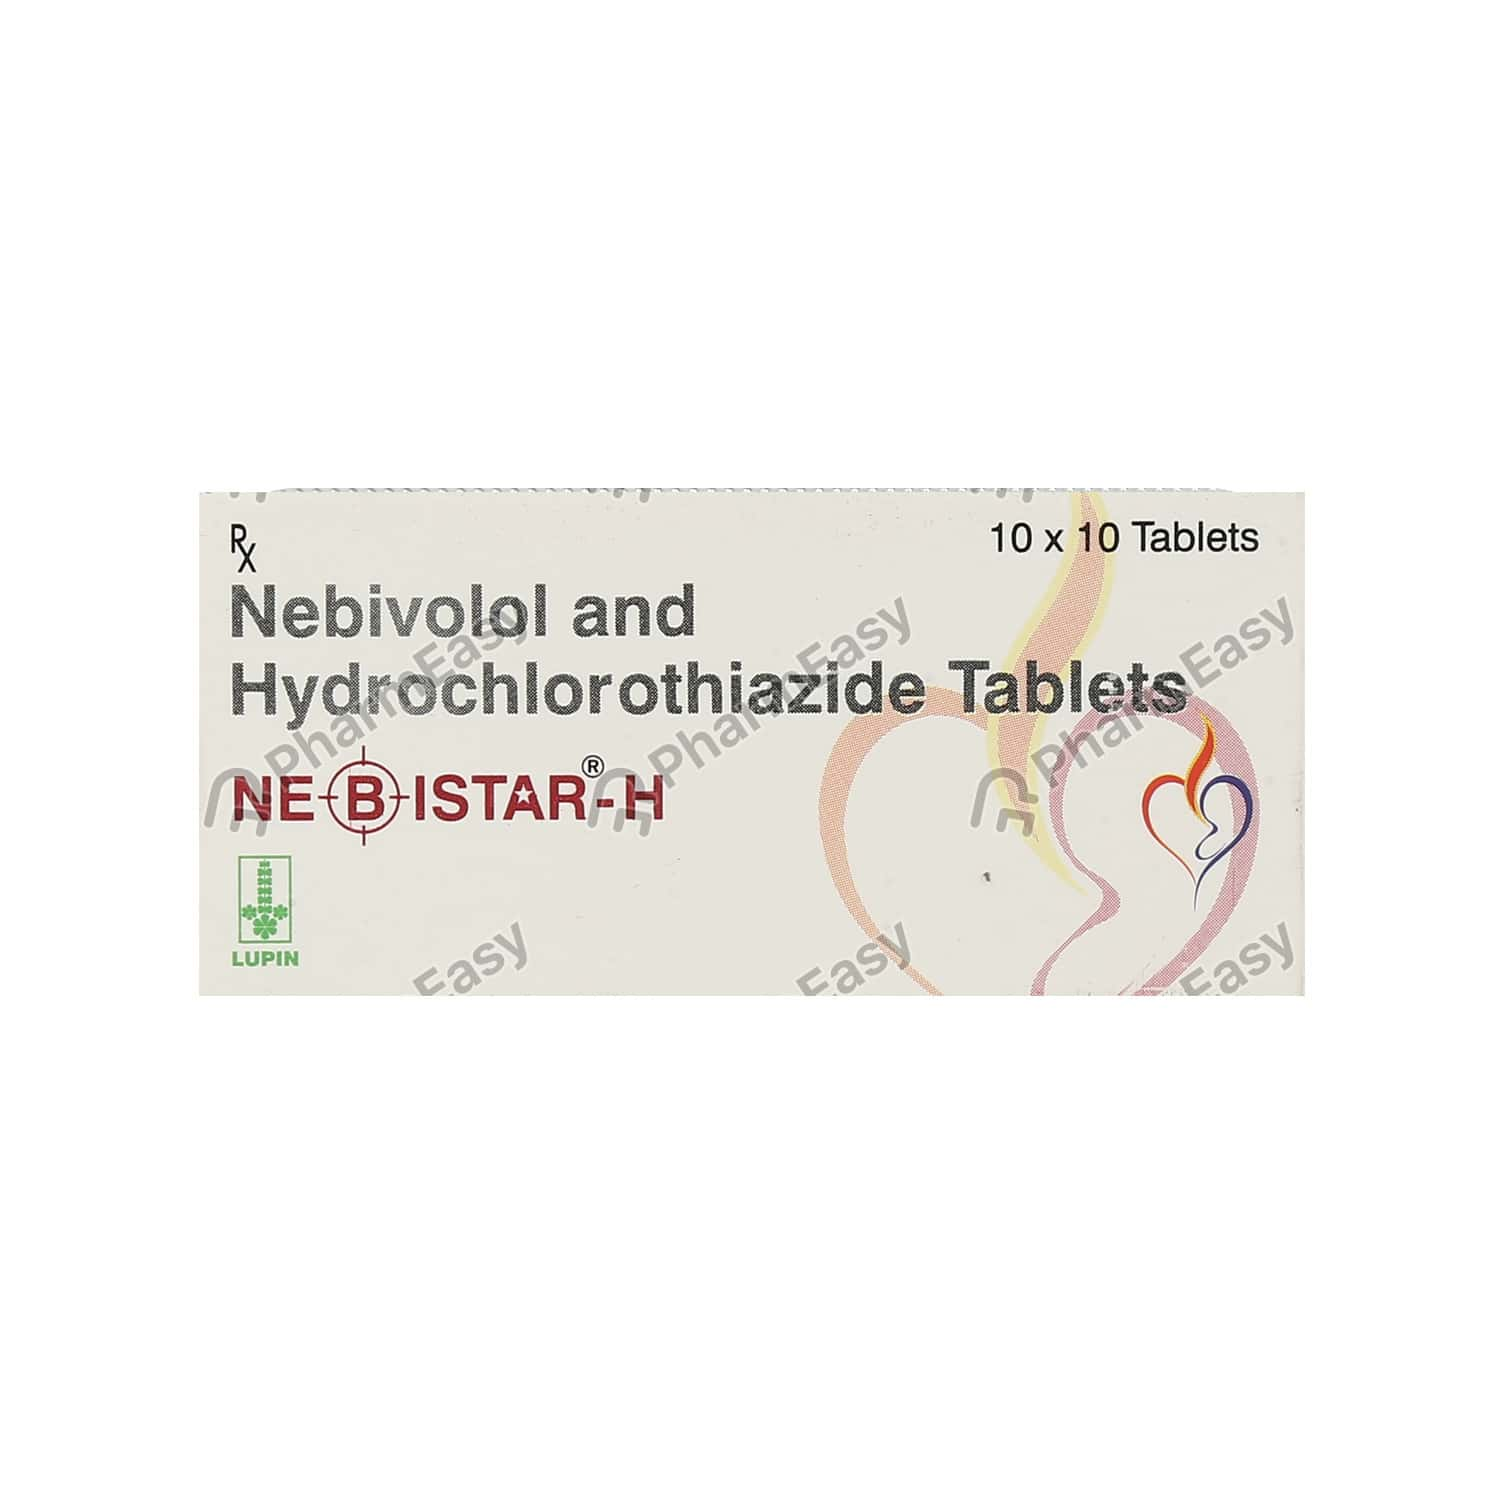 Nebistar H Tablet